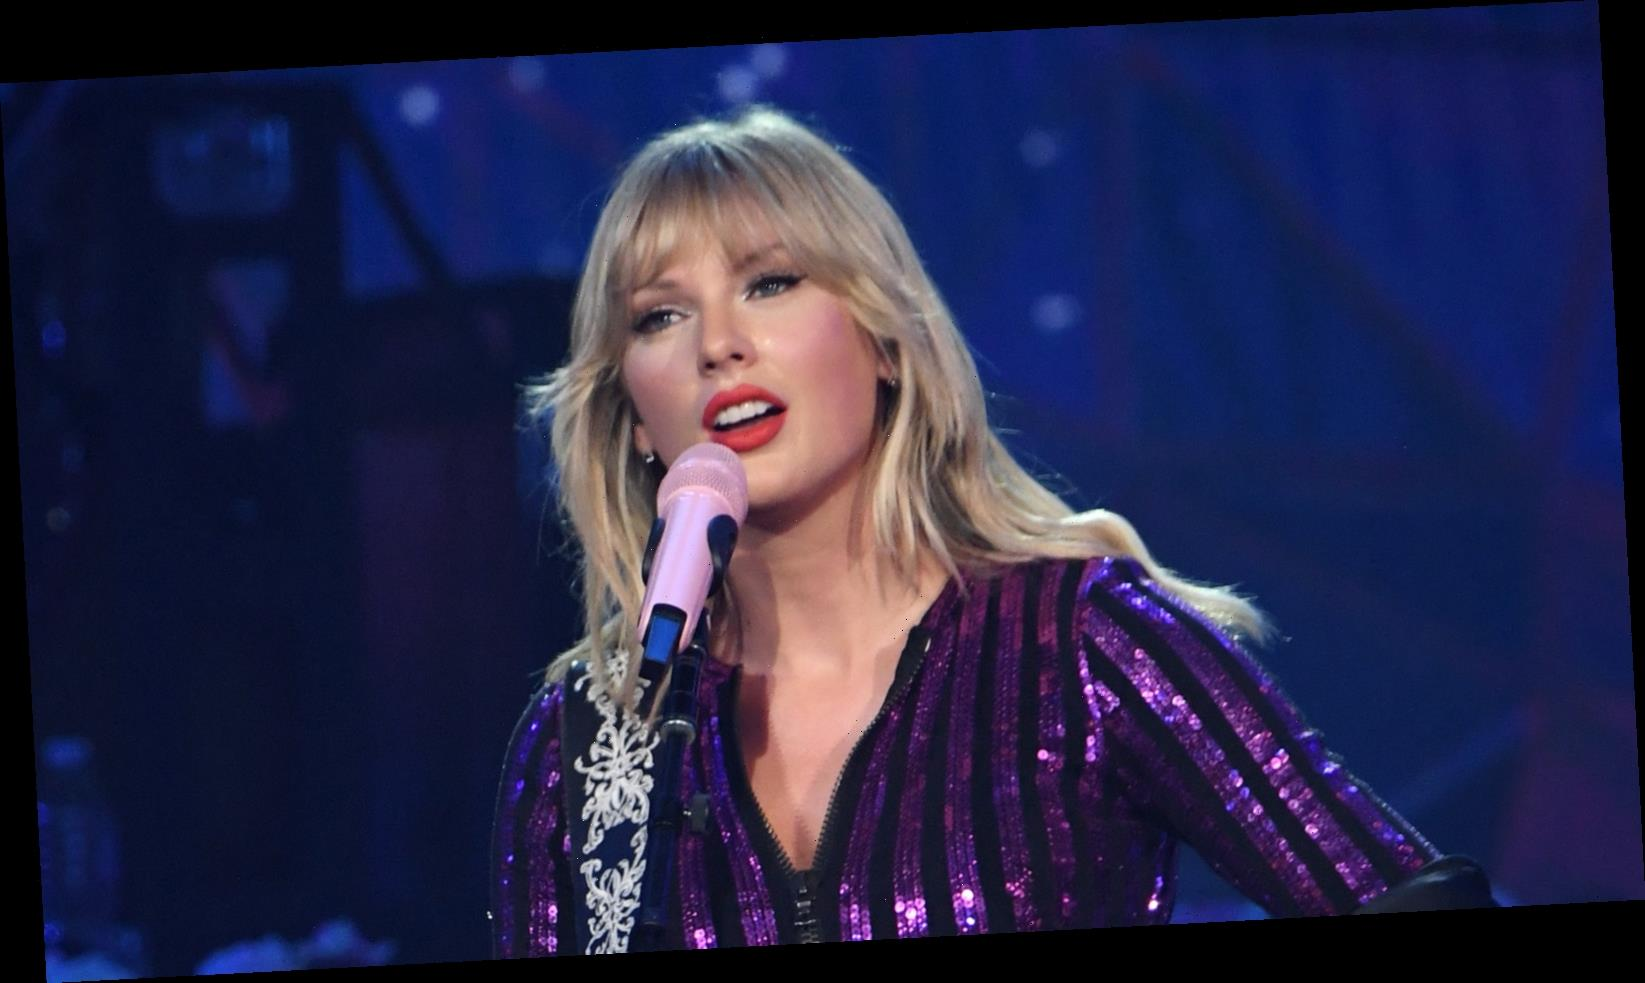 The real meaning behind Taylor Swift's Coney Island lyrics